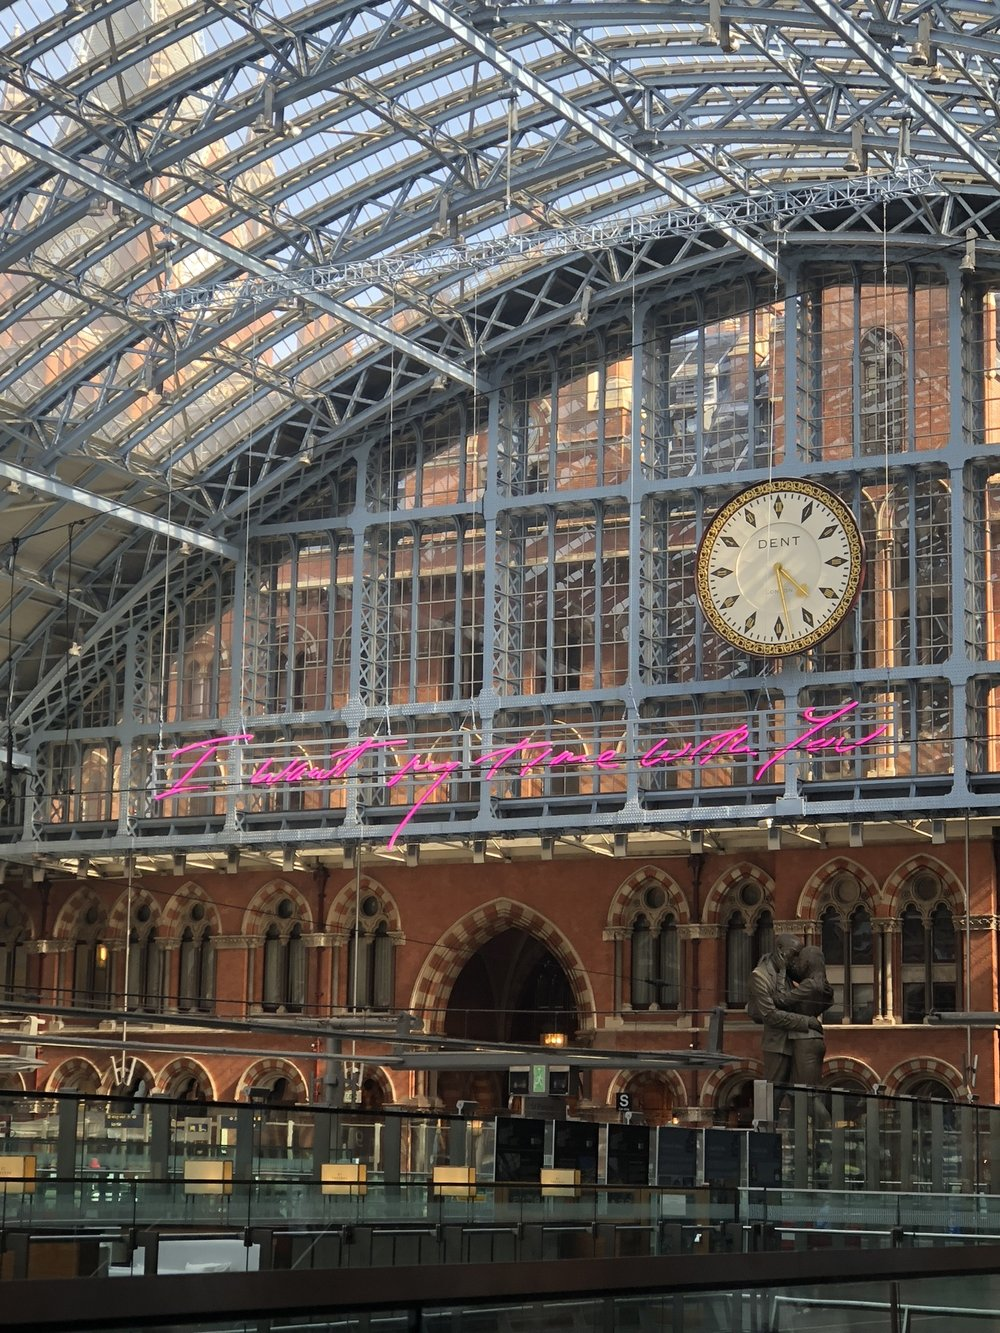 Tracey Emin's artwork for St Pancras station